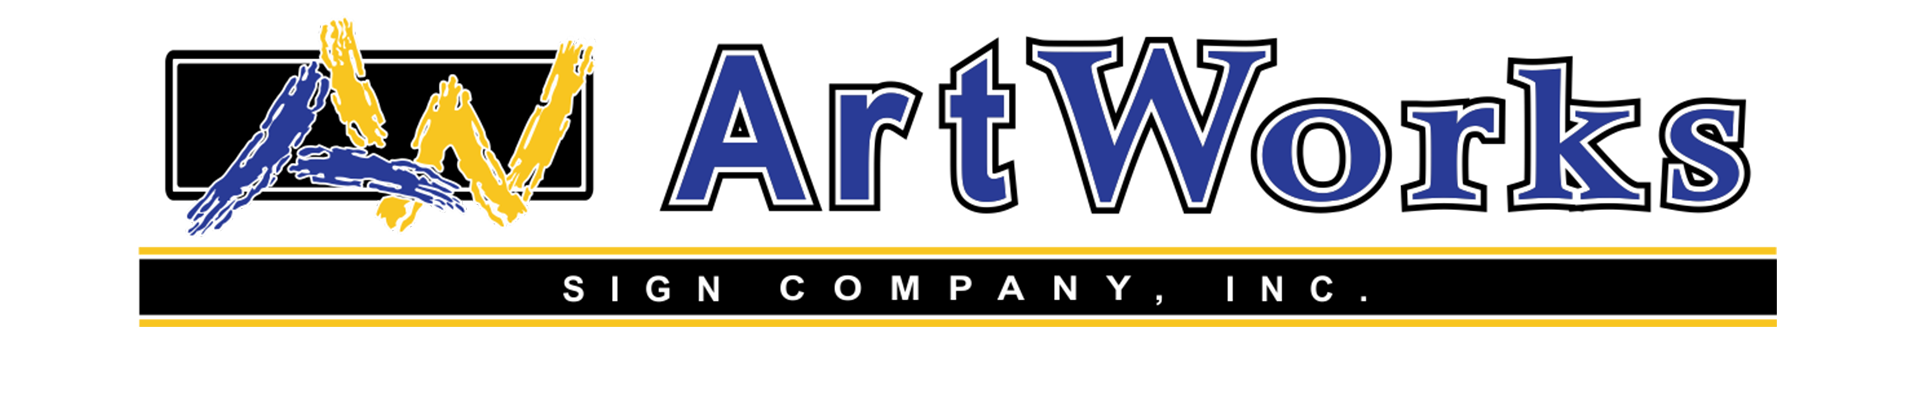 Art Works Sign Company, Inc.